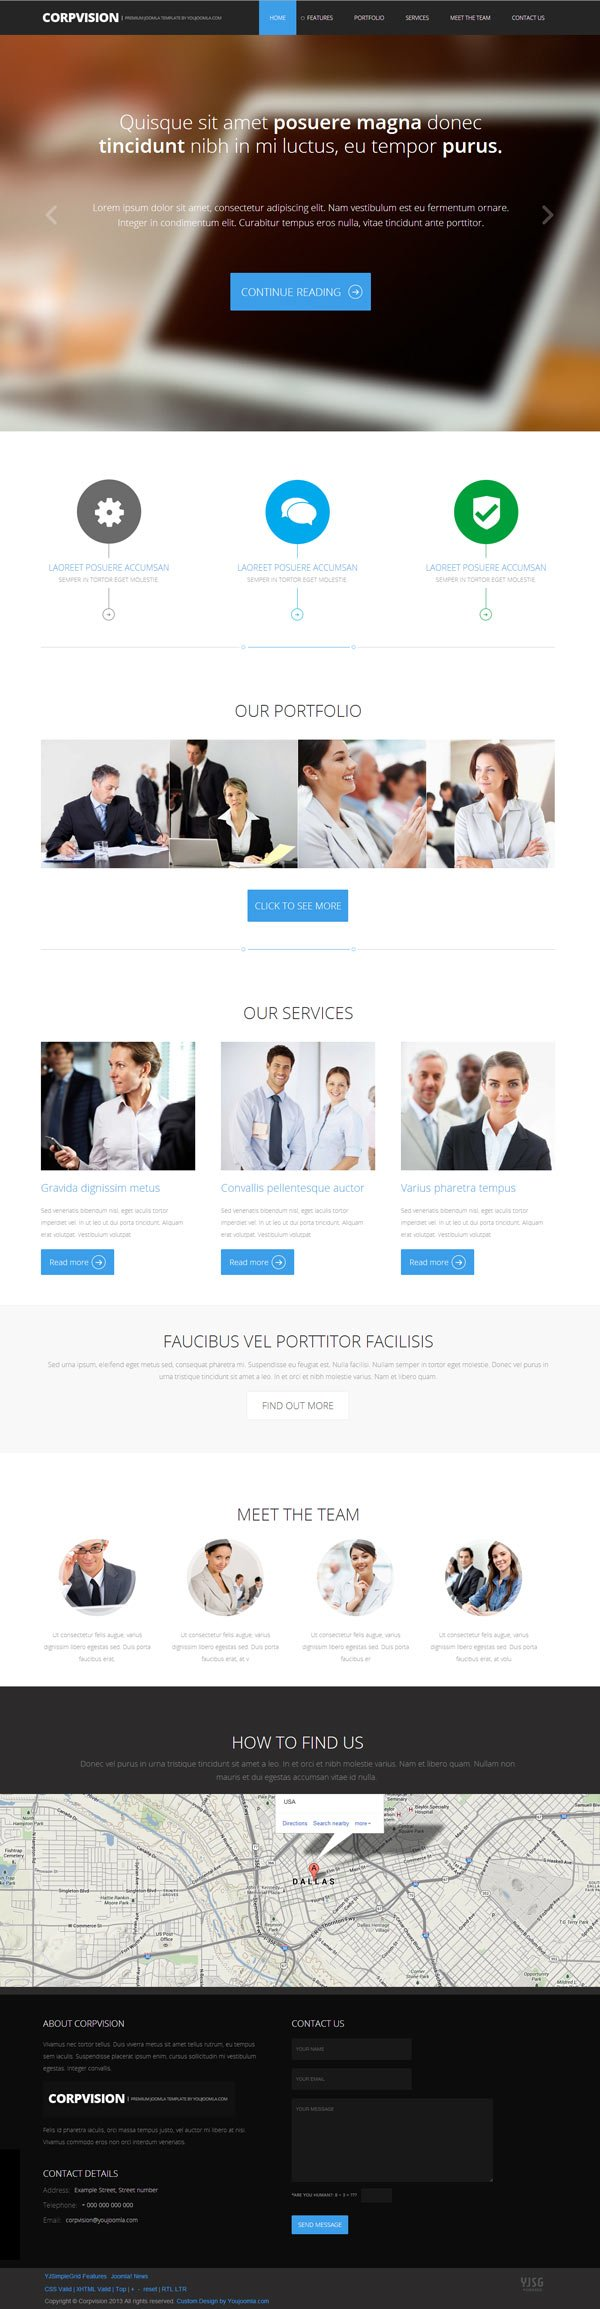 Corpvision Joomla One Page Responsive Template